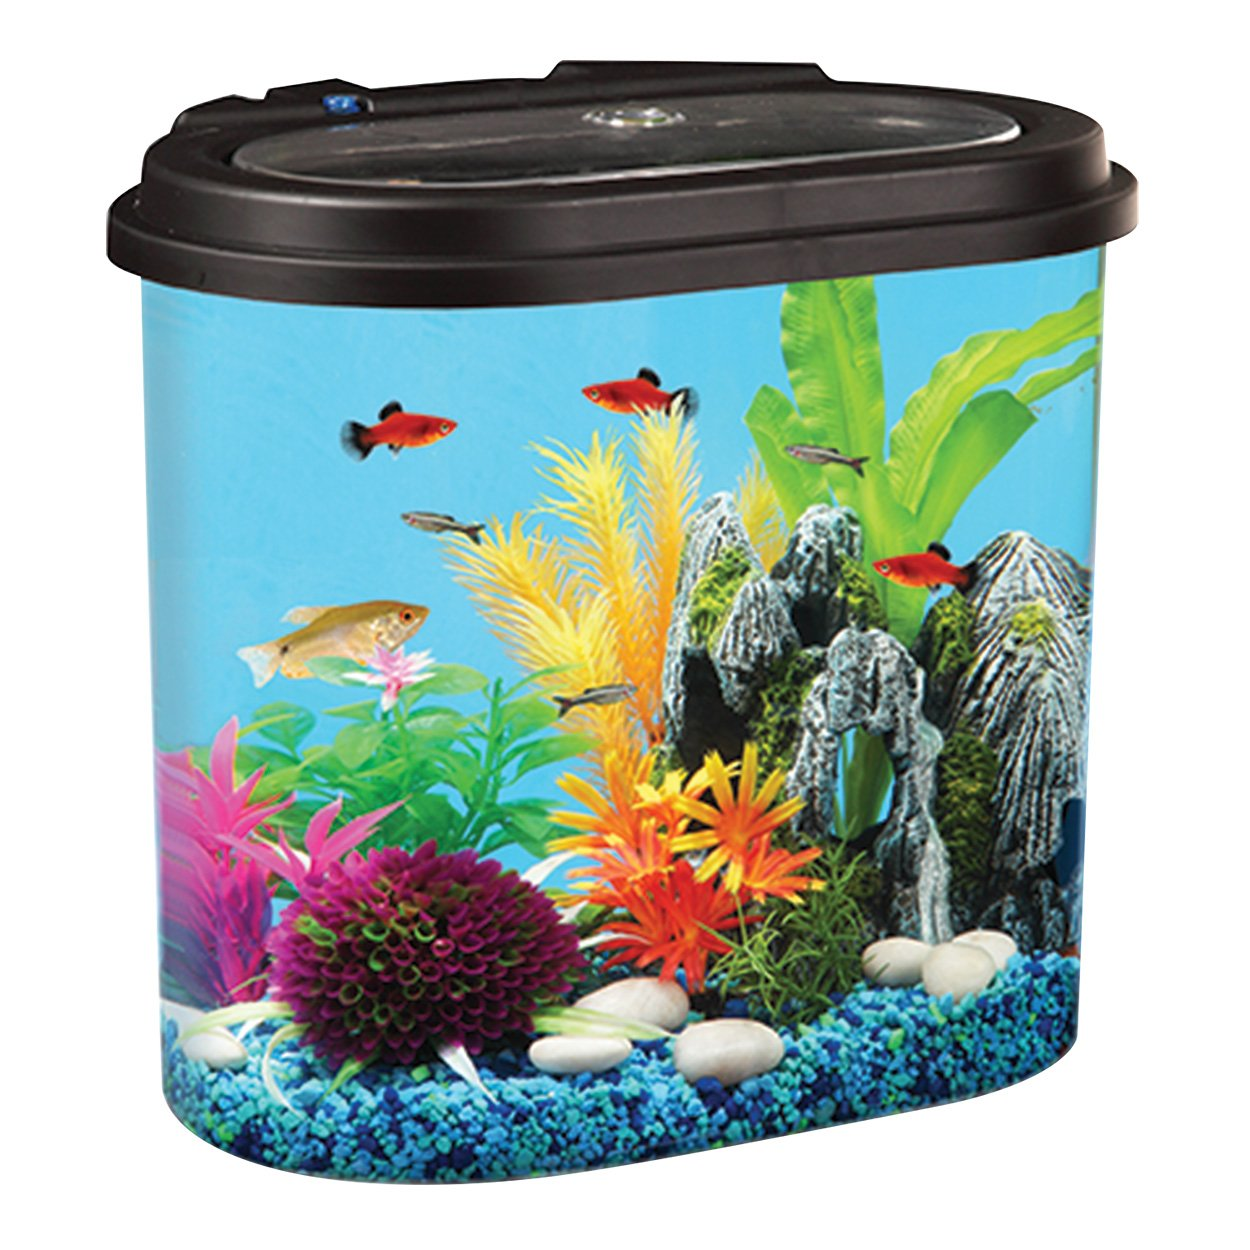 Koller Products AquaView 4.5-Gallon Fish Tank with LED Lighting and Power Filter, (AQ4500IF) by Koller Products